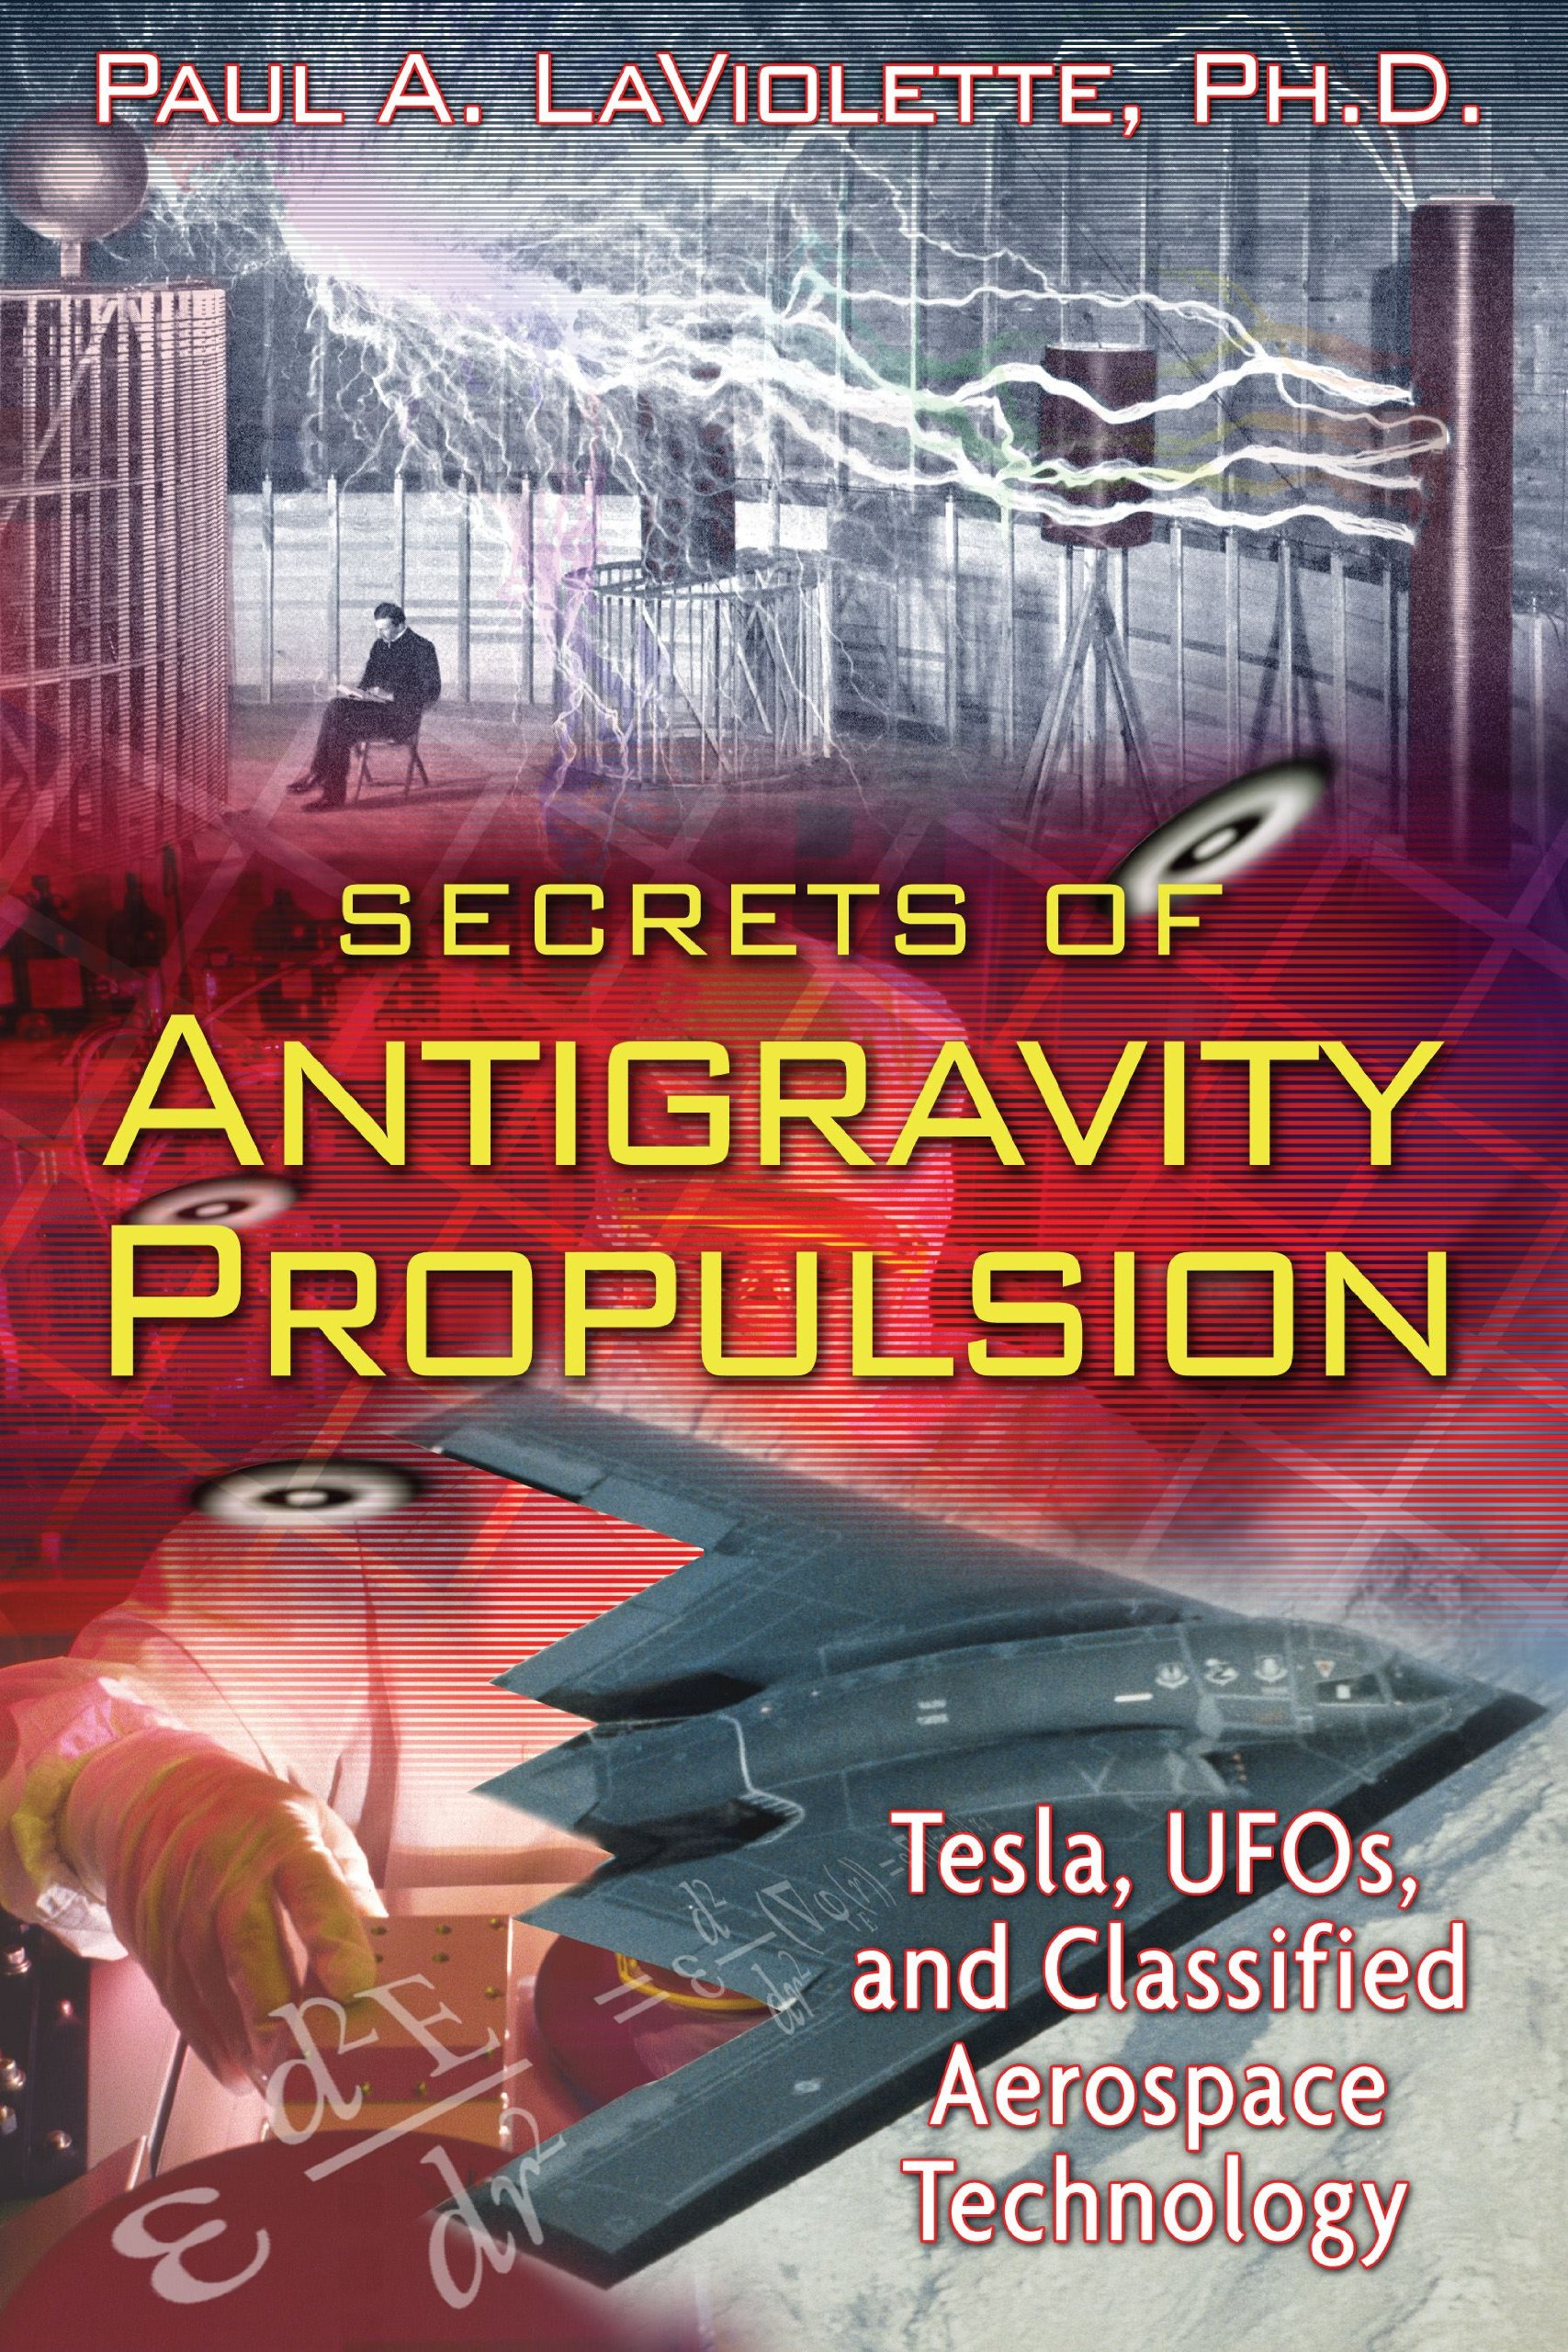 alien technology antigravity propulsion nikola tesla ufos